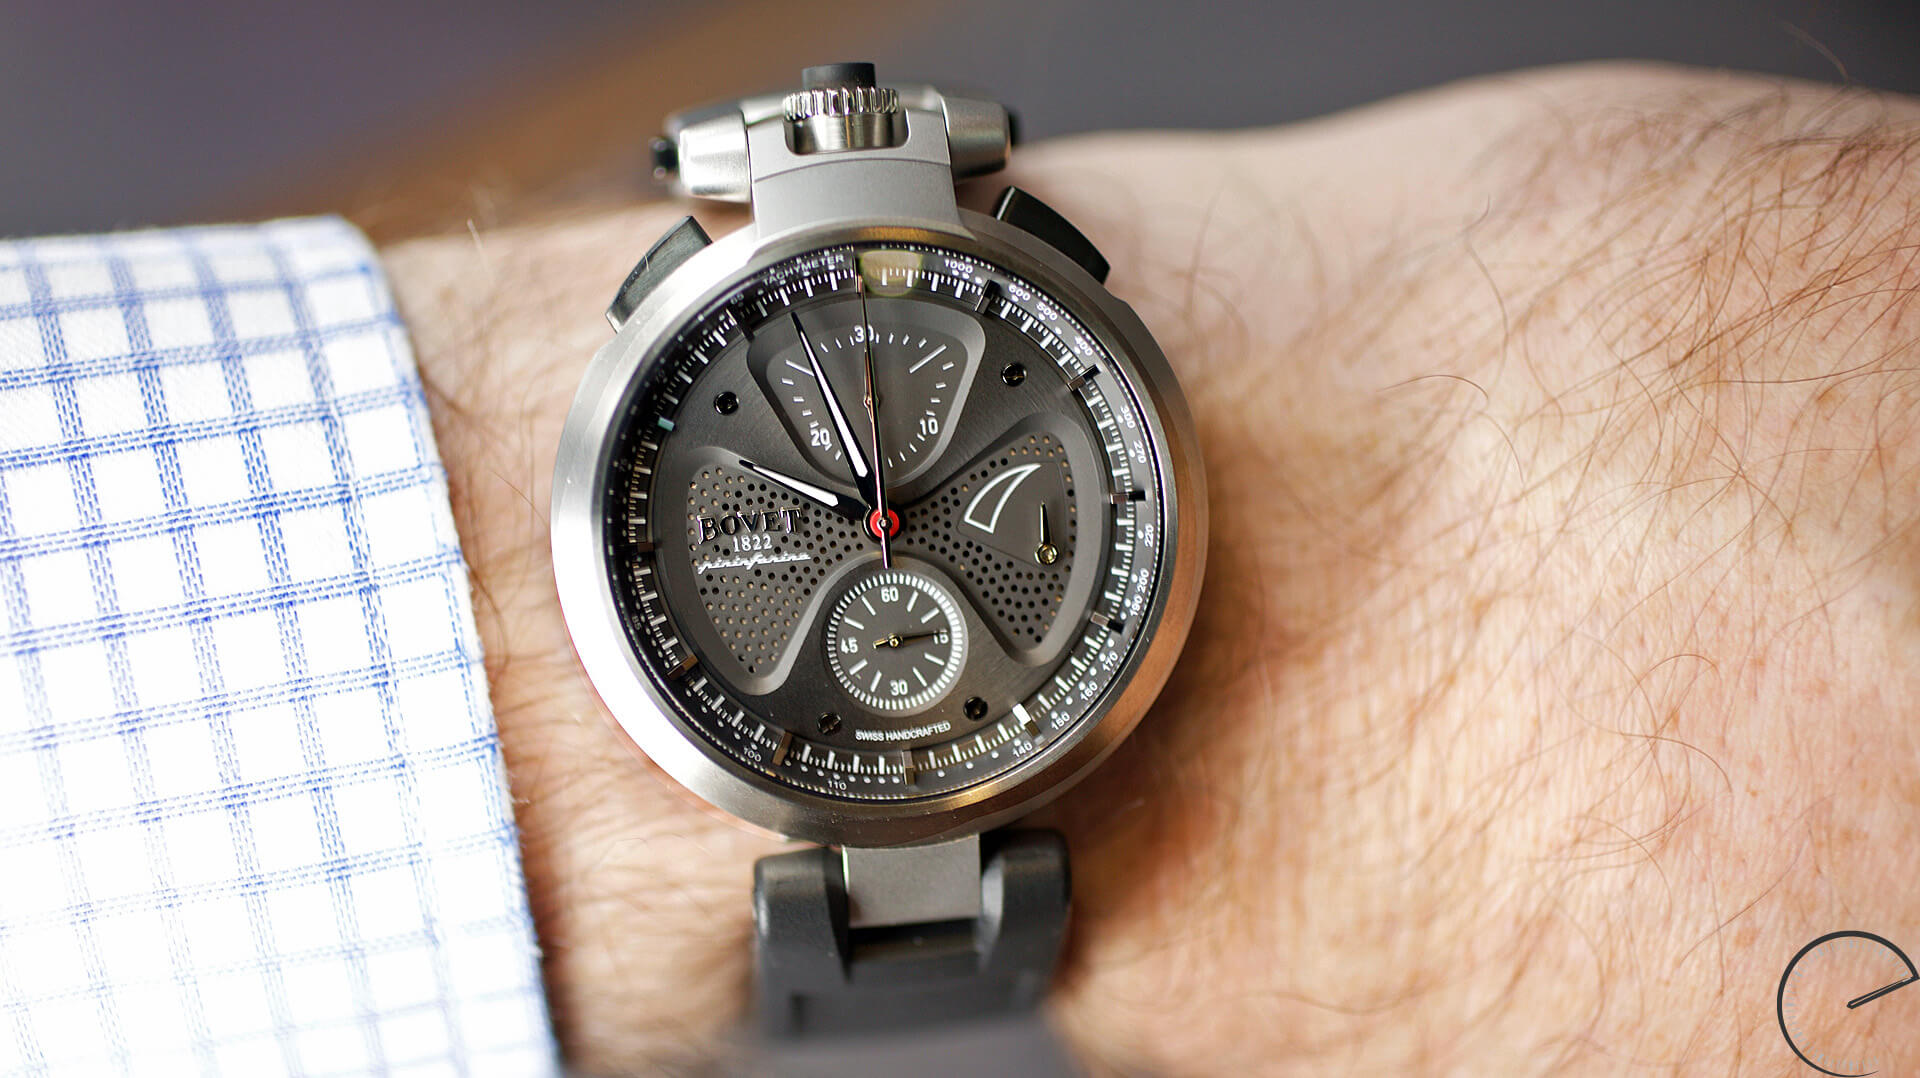 Bovet by Pininfarina 'Sergio' Split-Second Chronograph - ESCAPEMENT - watch review website by Angus Davies